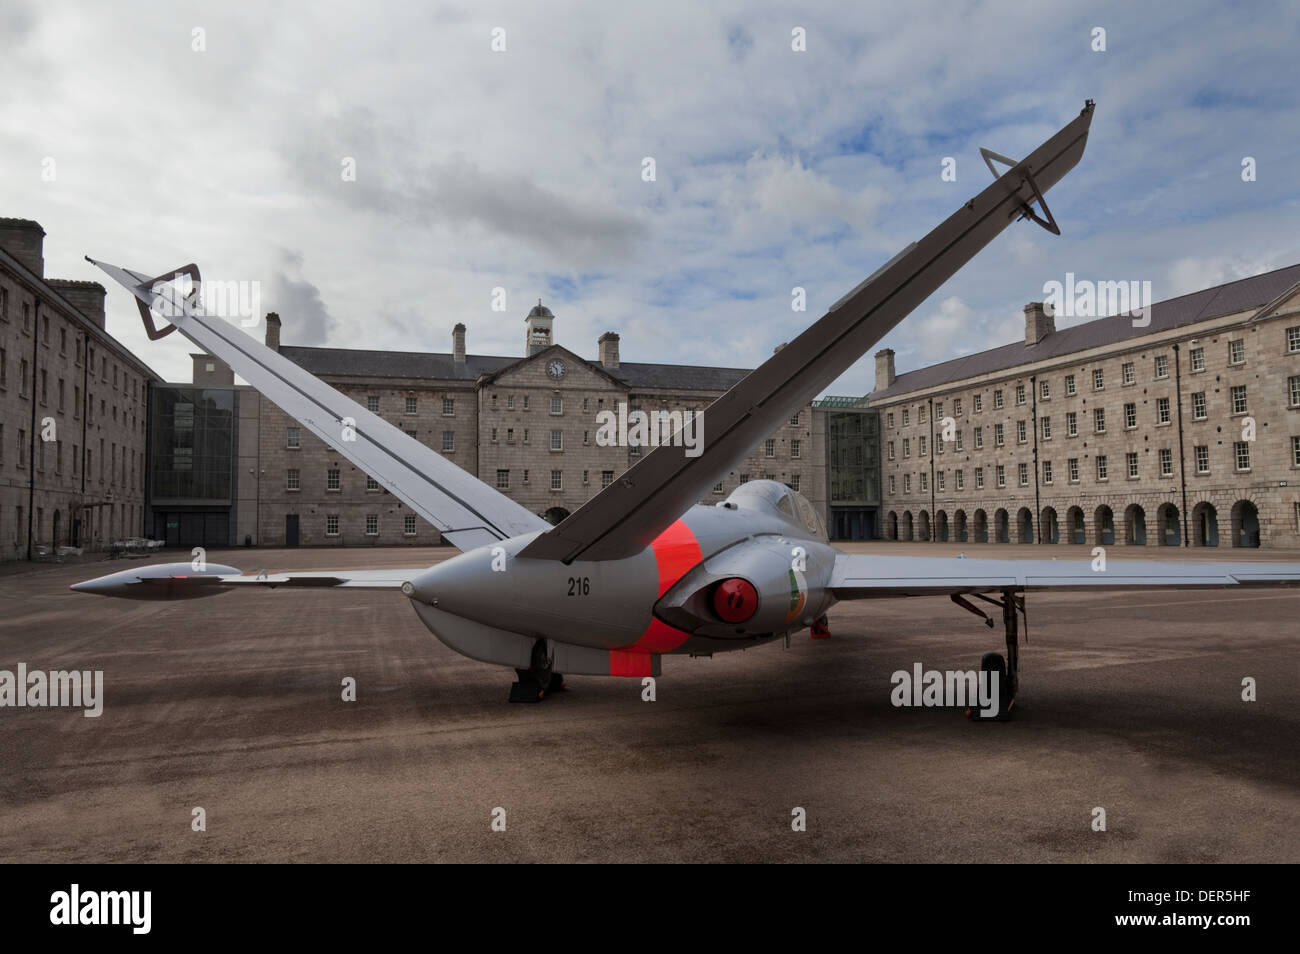 Retired Irish Air Corps Fouga CM.170 Magister training aircraft, Collins Barracks - National Museum of Ireland, - Stock Image